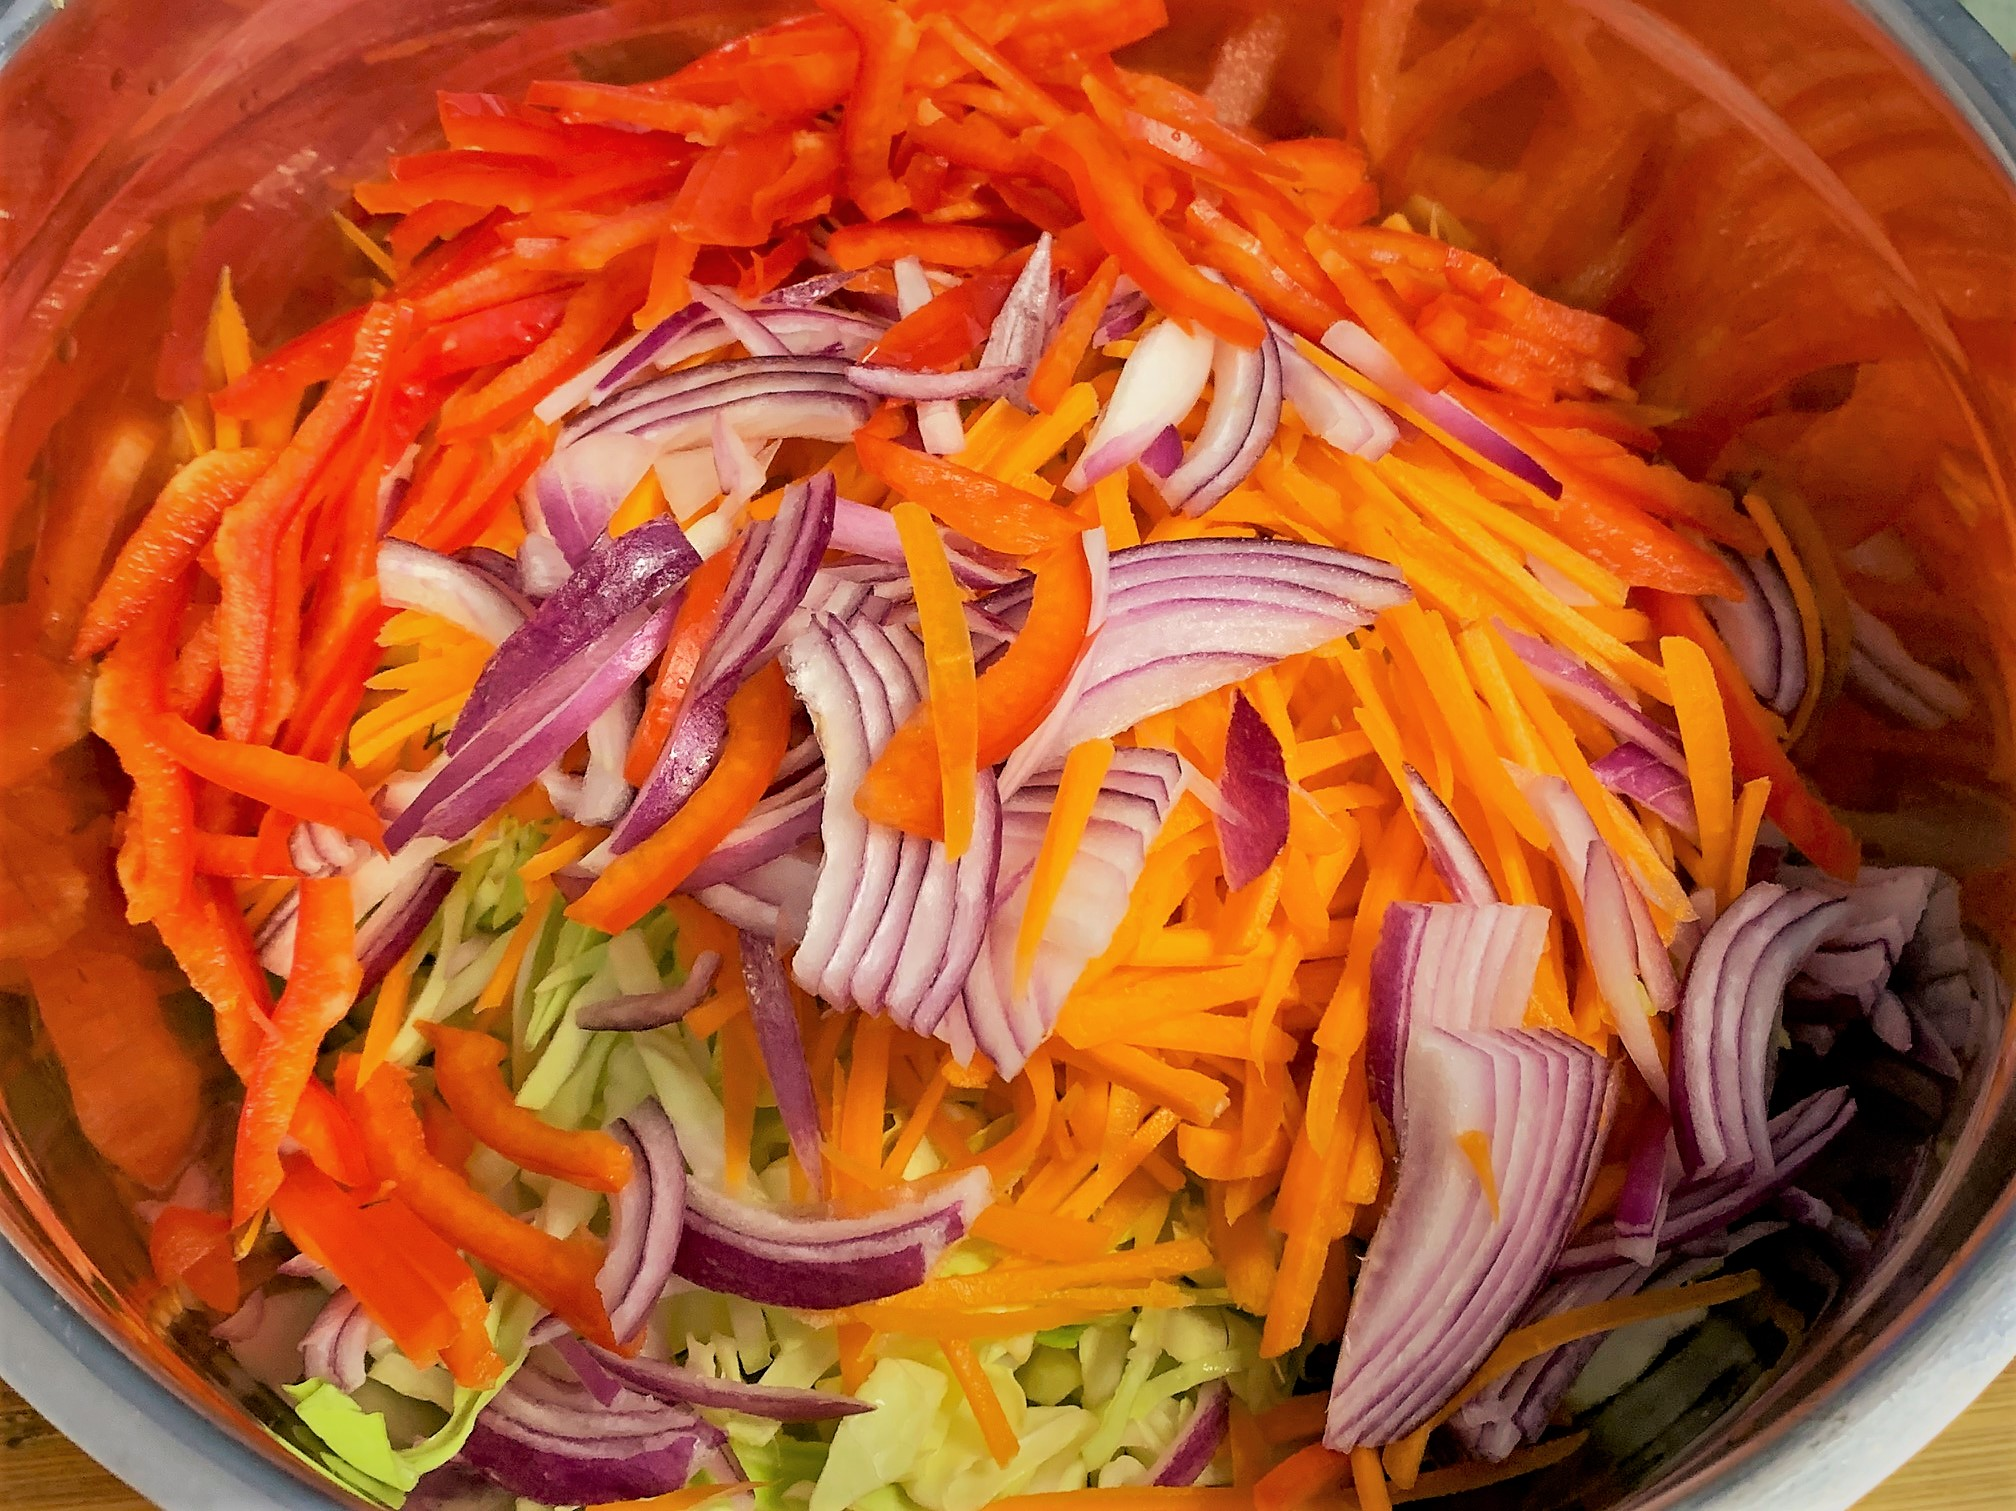 The shredded vegetables for the Slaw - Ronto Wrap Copy-Cat Recipe